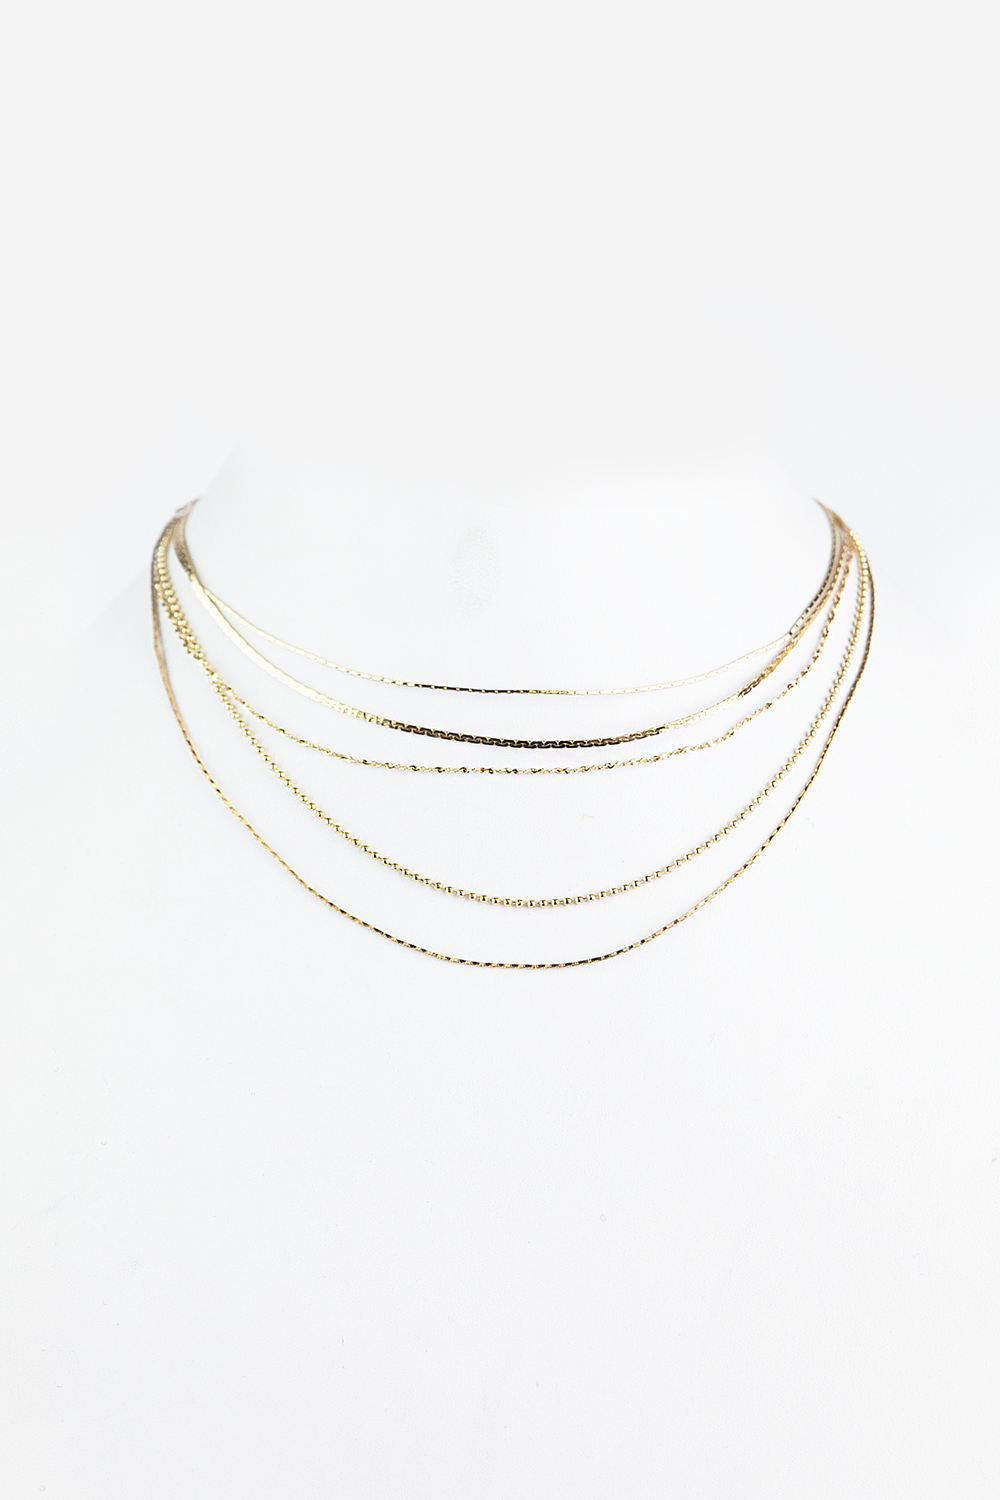 All of Me Petite Layered Choker - Haute & Rebellious